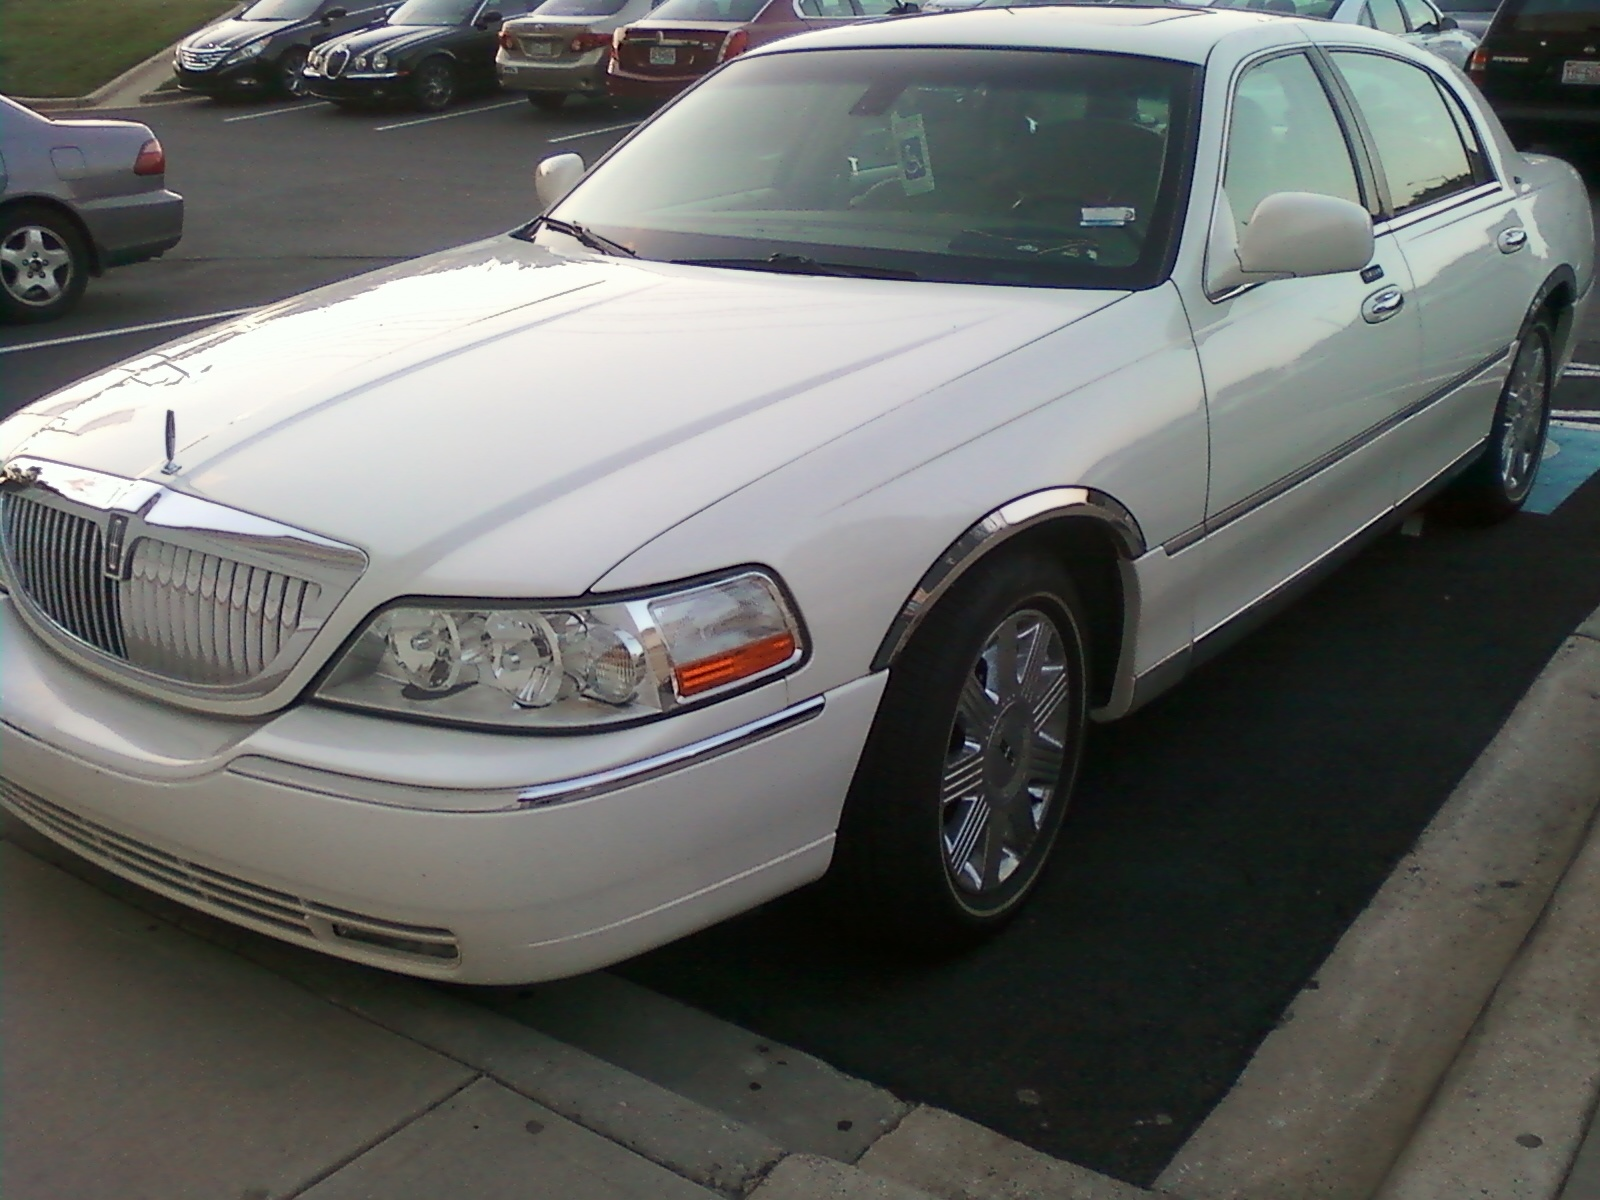 hight resolution of  and detroit wonders why we rather buy cars from germany and japan my lincoln leaks like a siv